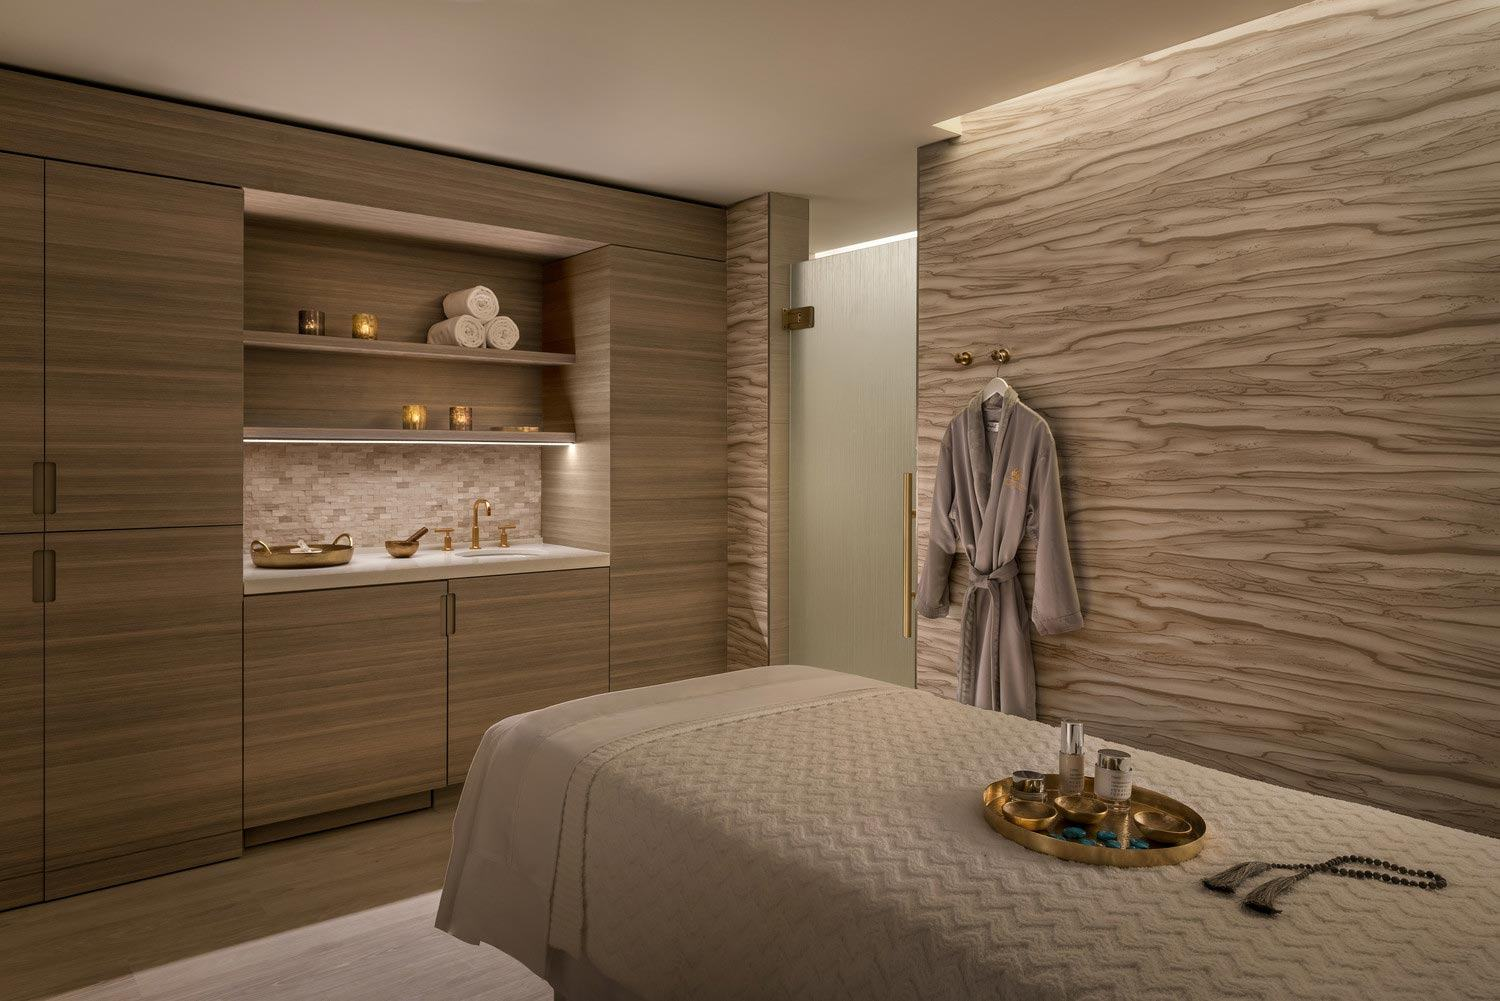 Treatment Room at The Phoenician Spa